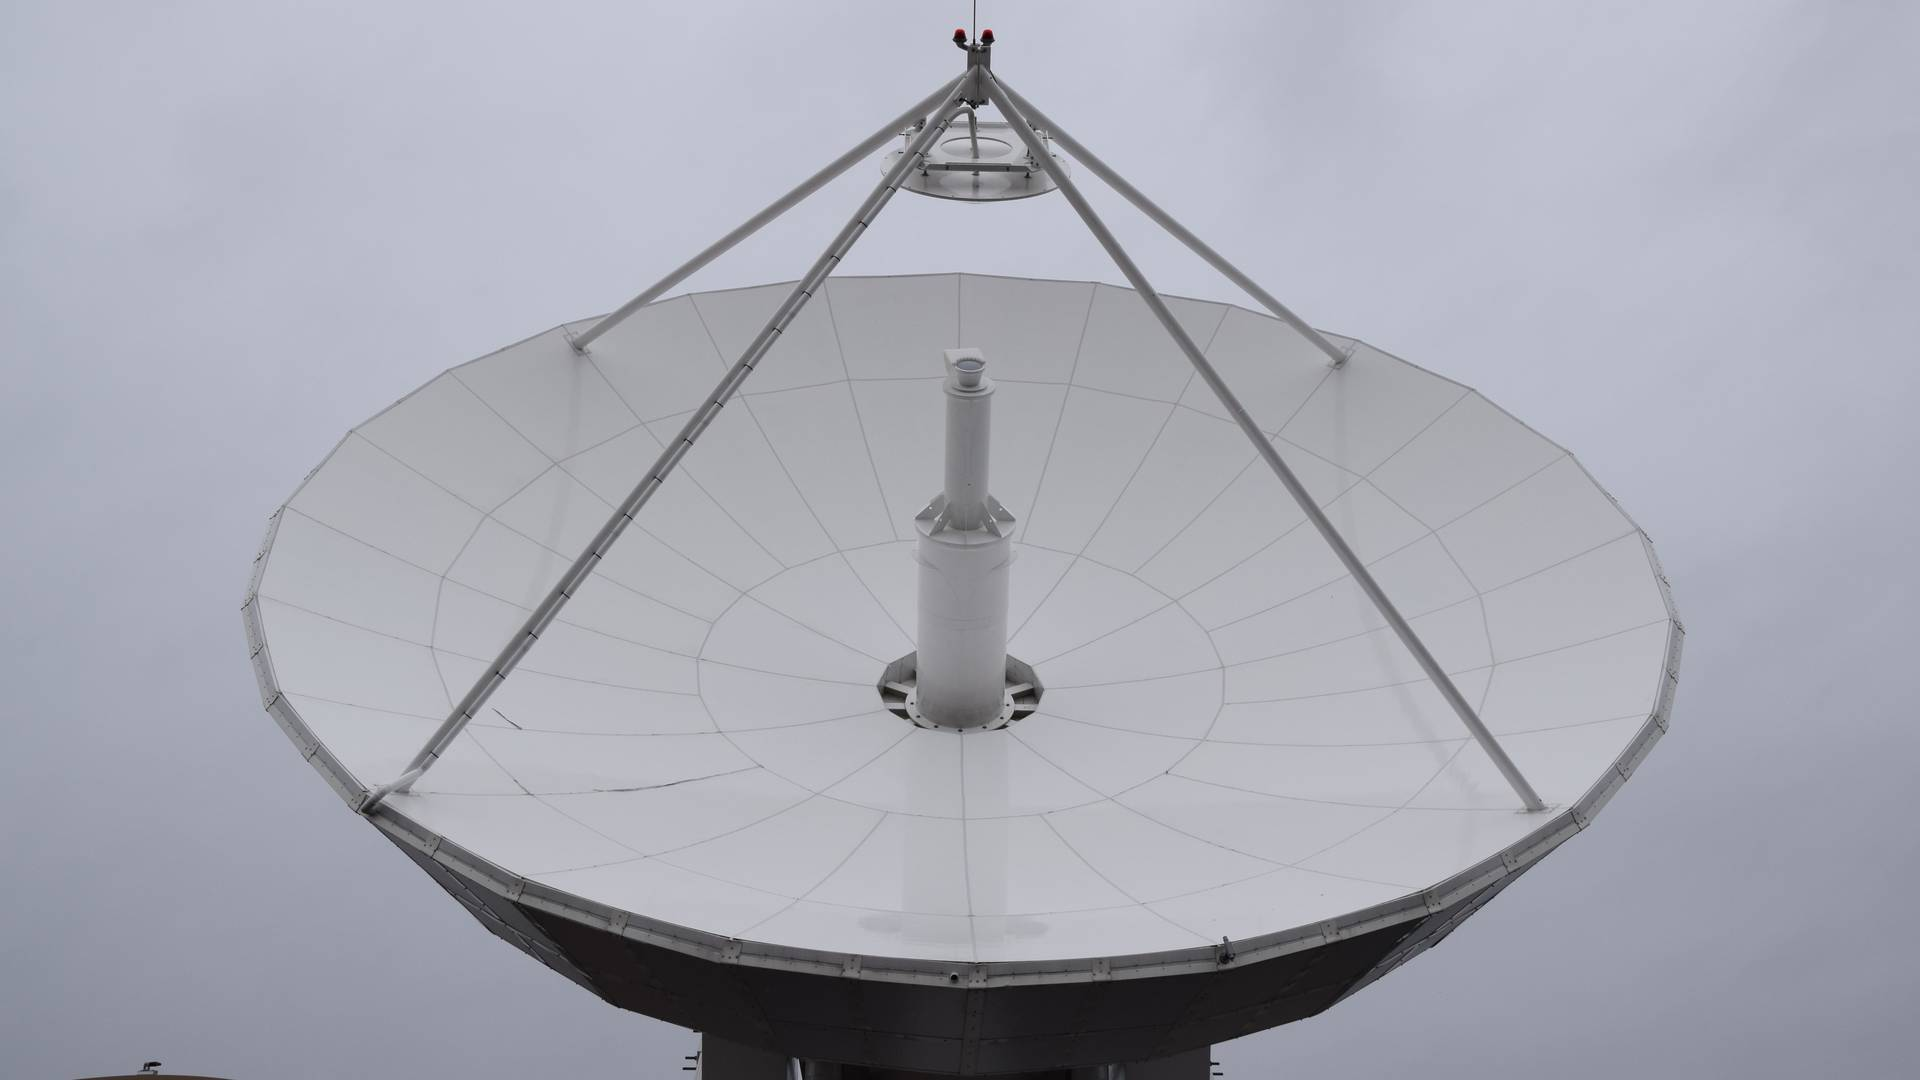 White ground satellite pointed toward cloudy sky